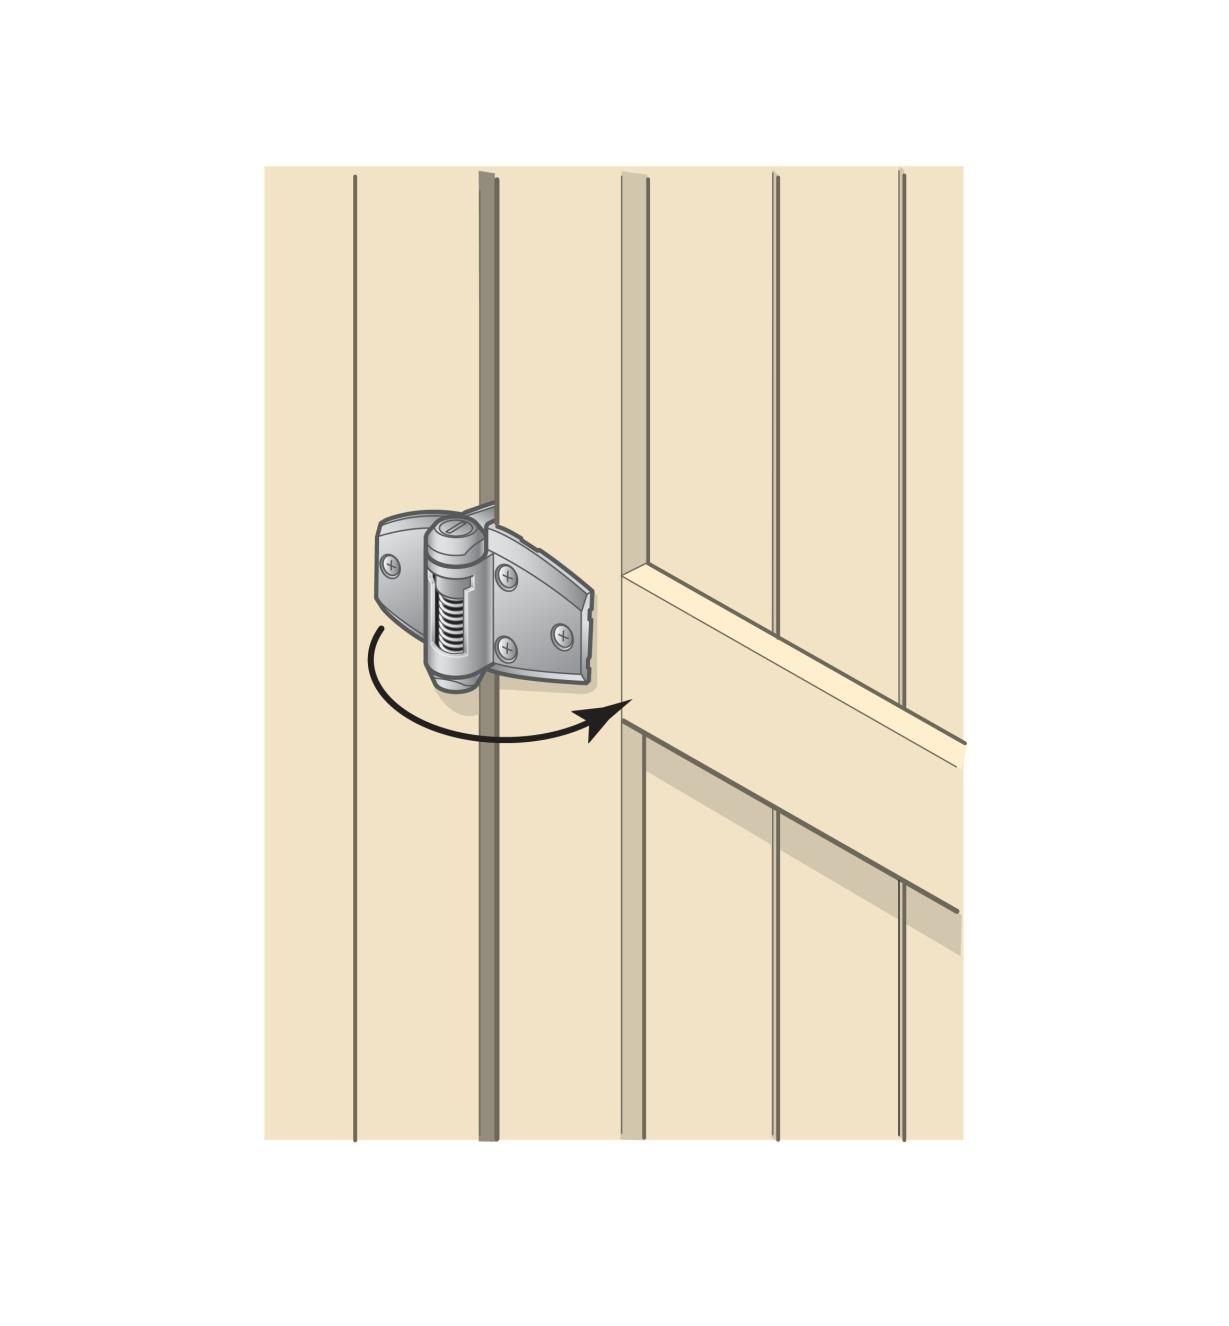 Illustration of Standard Wrap Hinge mounted to a gate